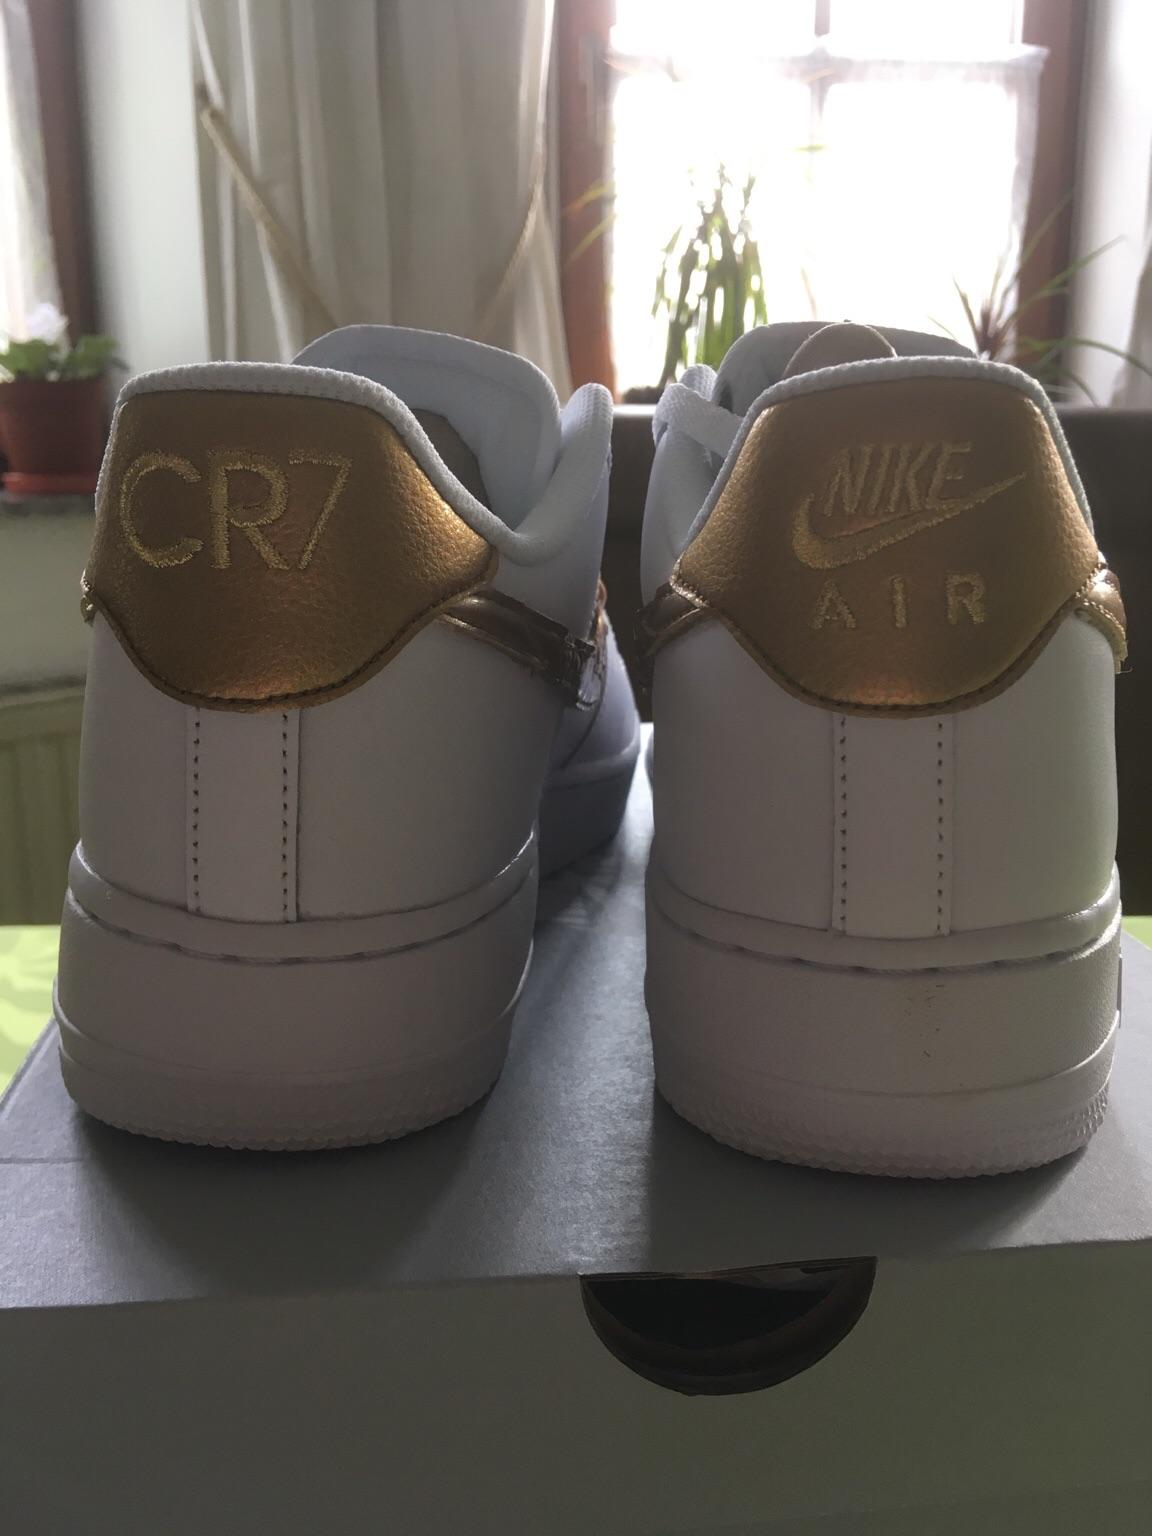 Nike Air Force 1 CR7 Golden Patchwork